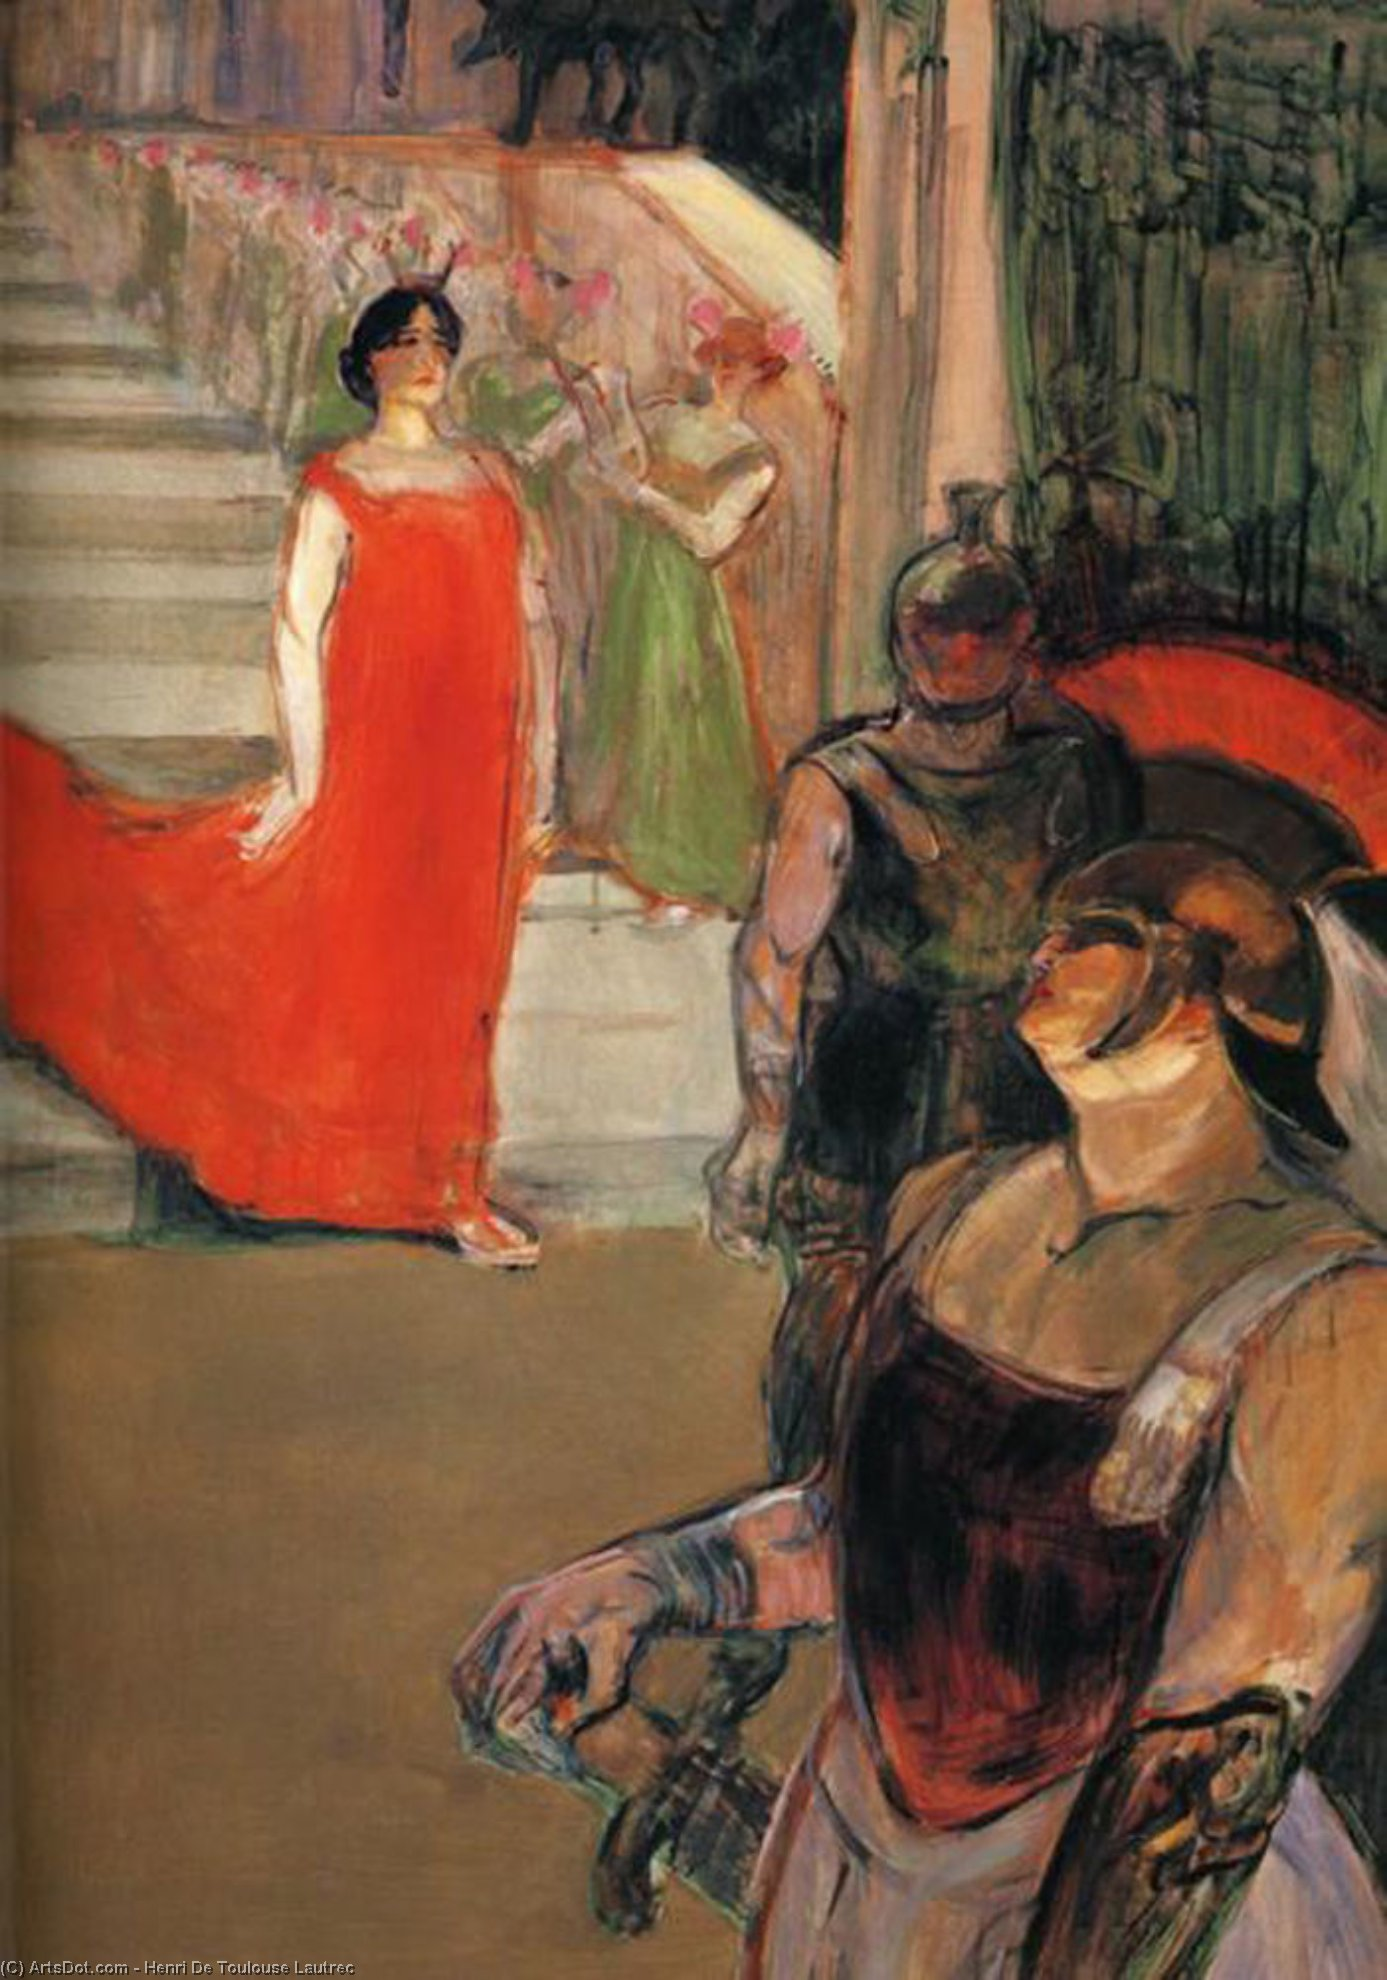 The Opera Messalina at Bordeaux, Oil by Henri De Toulouse Lautrec (1864-1901, France)